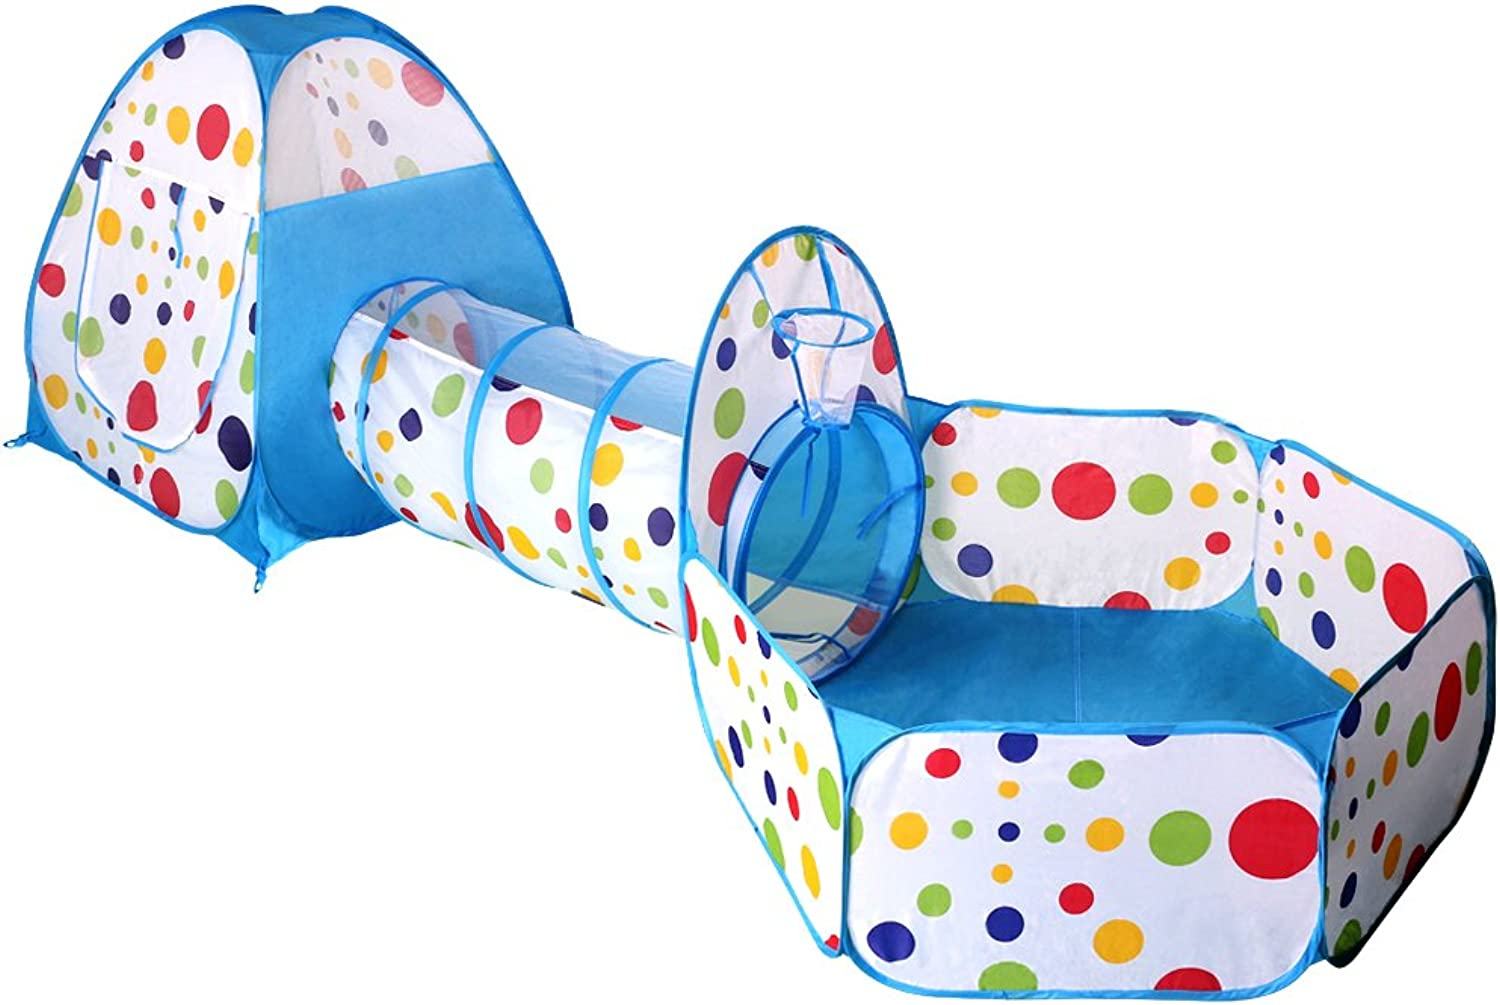 EocuSun Pop up Polka Dot Kids Play Tent with Tunnel and Ball Pit with Zippered Storage Bag, bluee